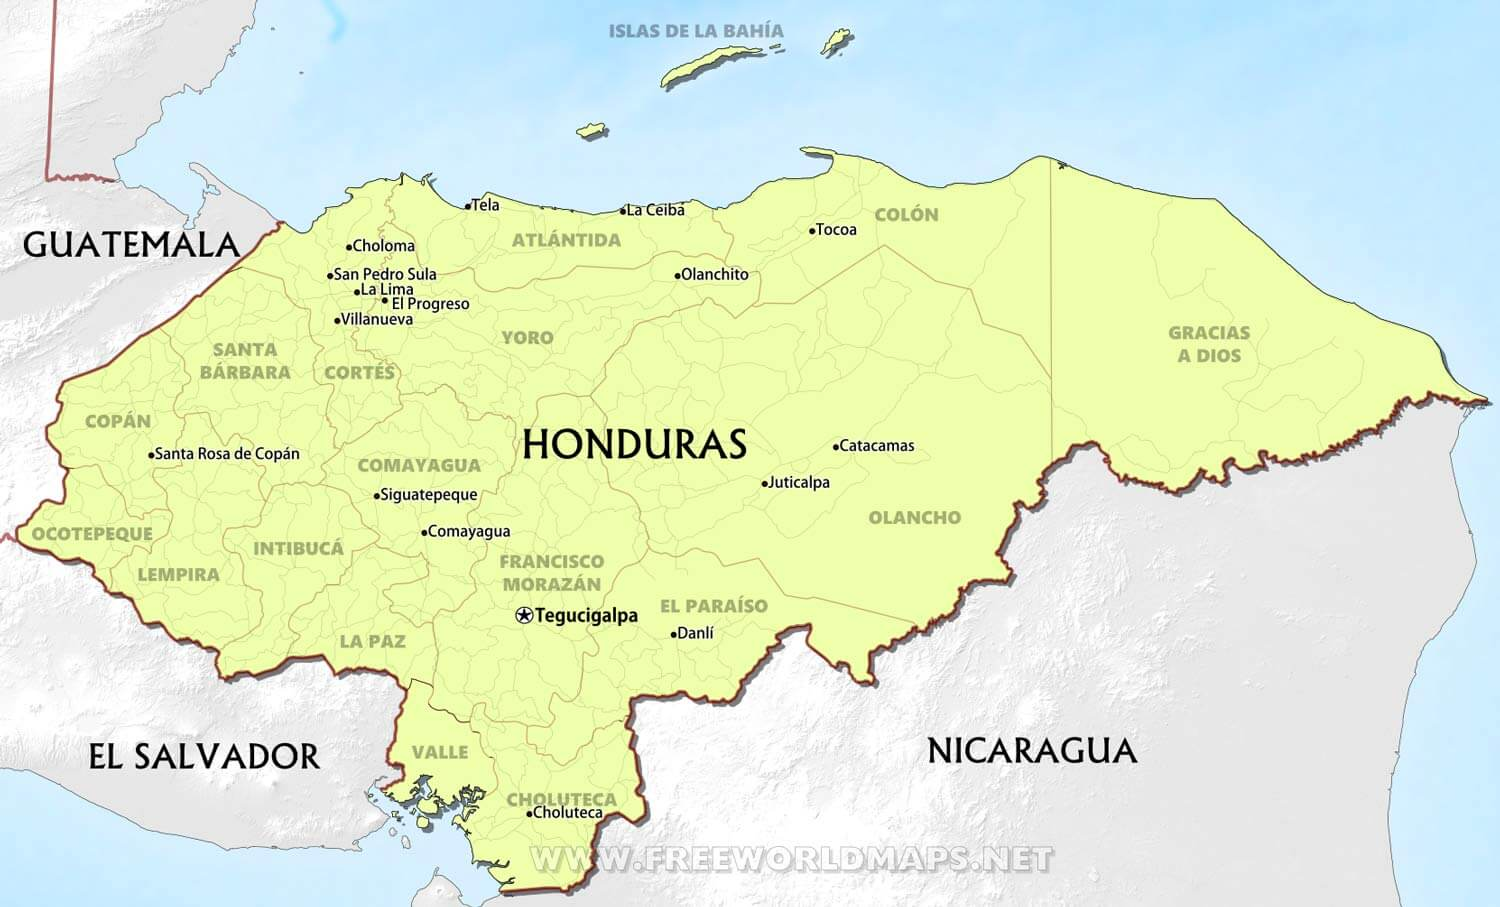 Honduras Maps FreeWorldMapsnet - Hondurus map